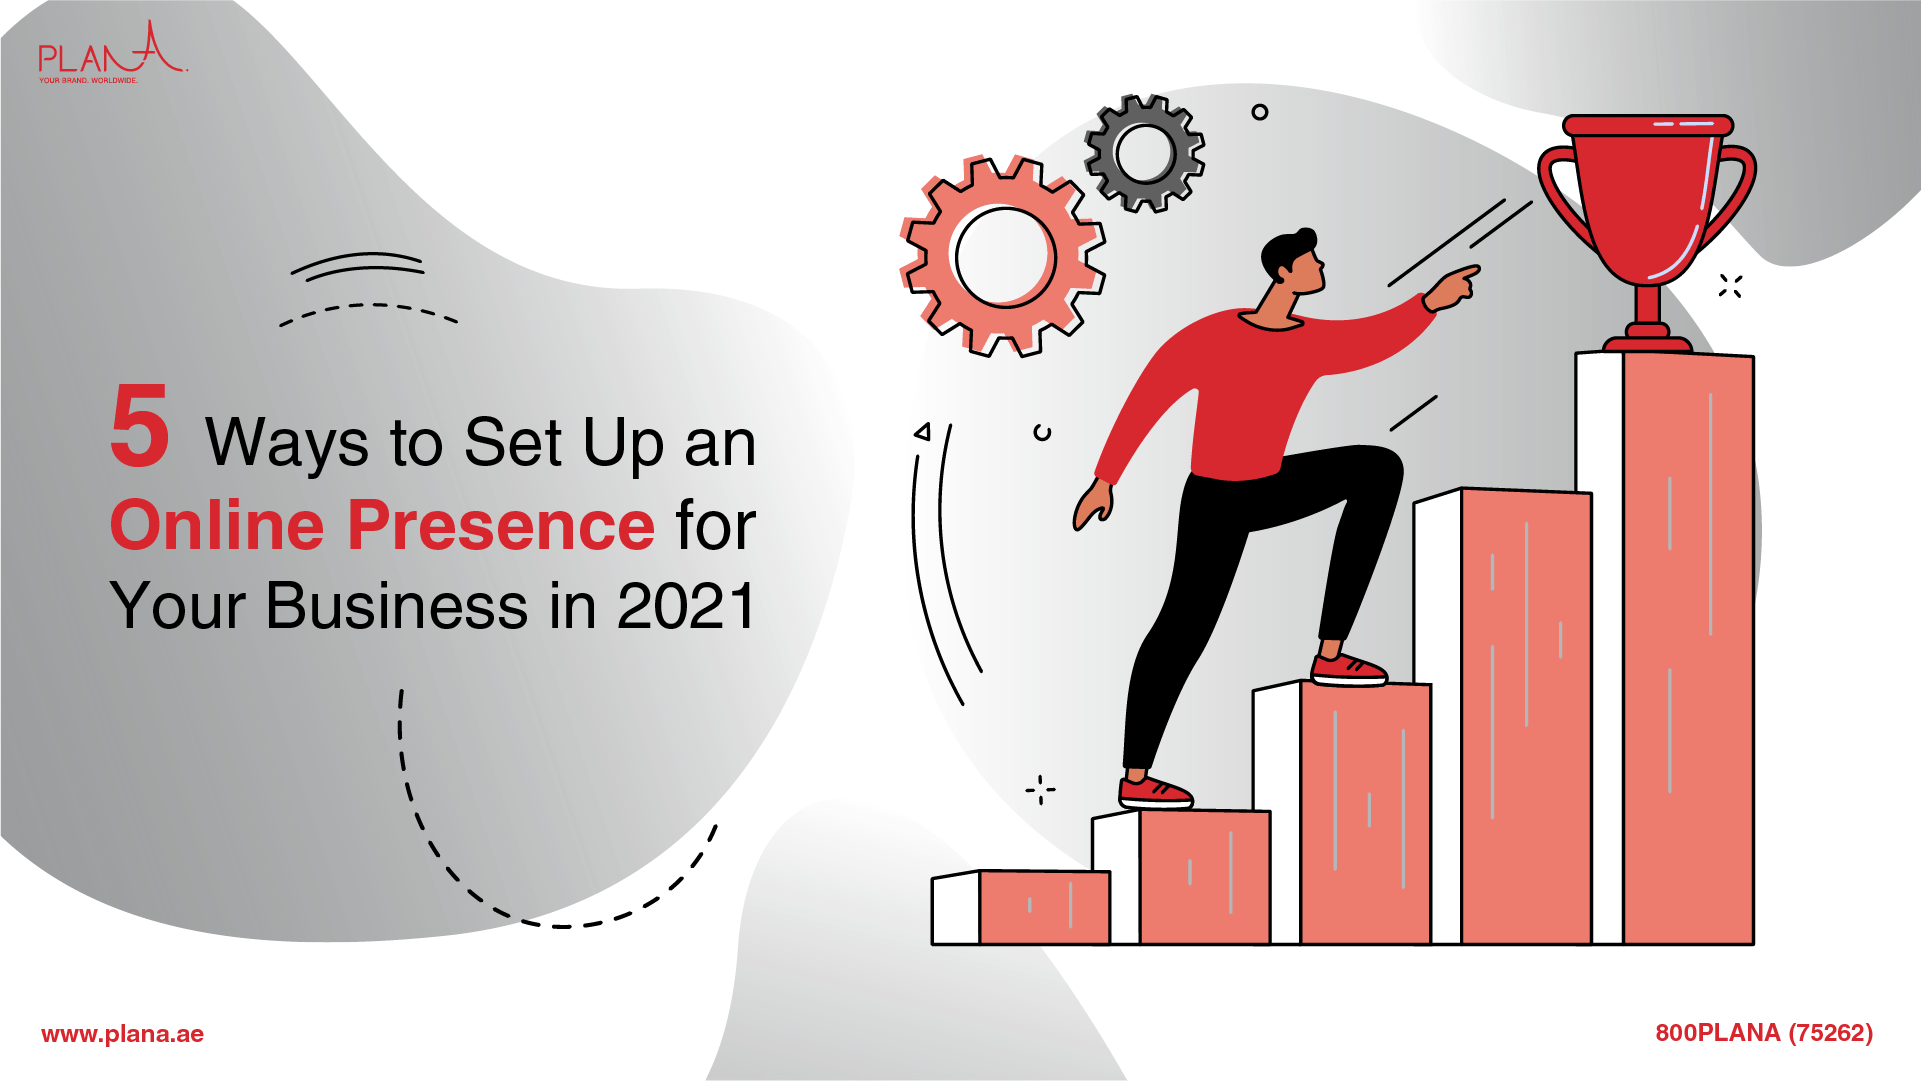 5 Ways to Set Up an Online Presence for Your Business in 2021